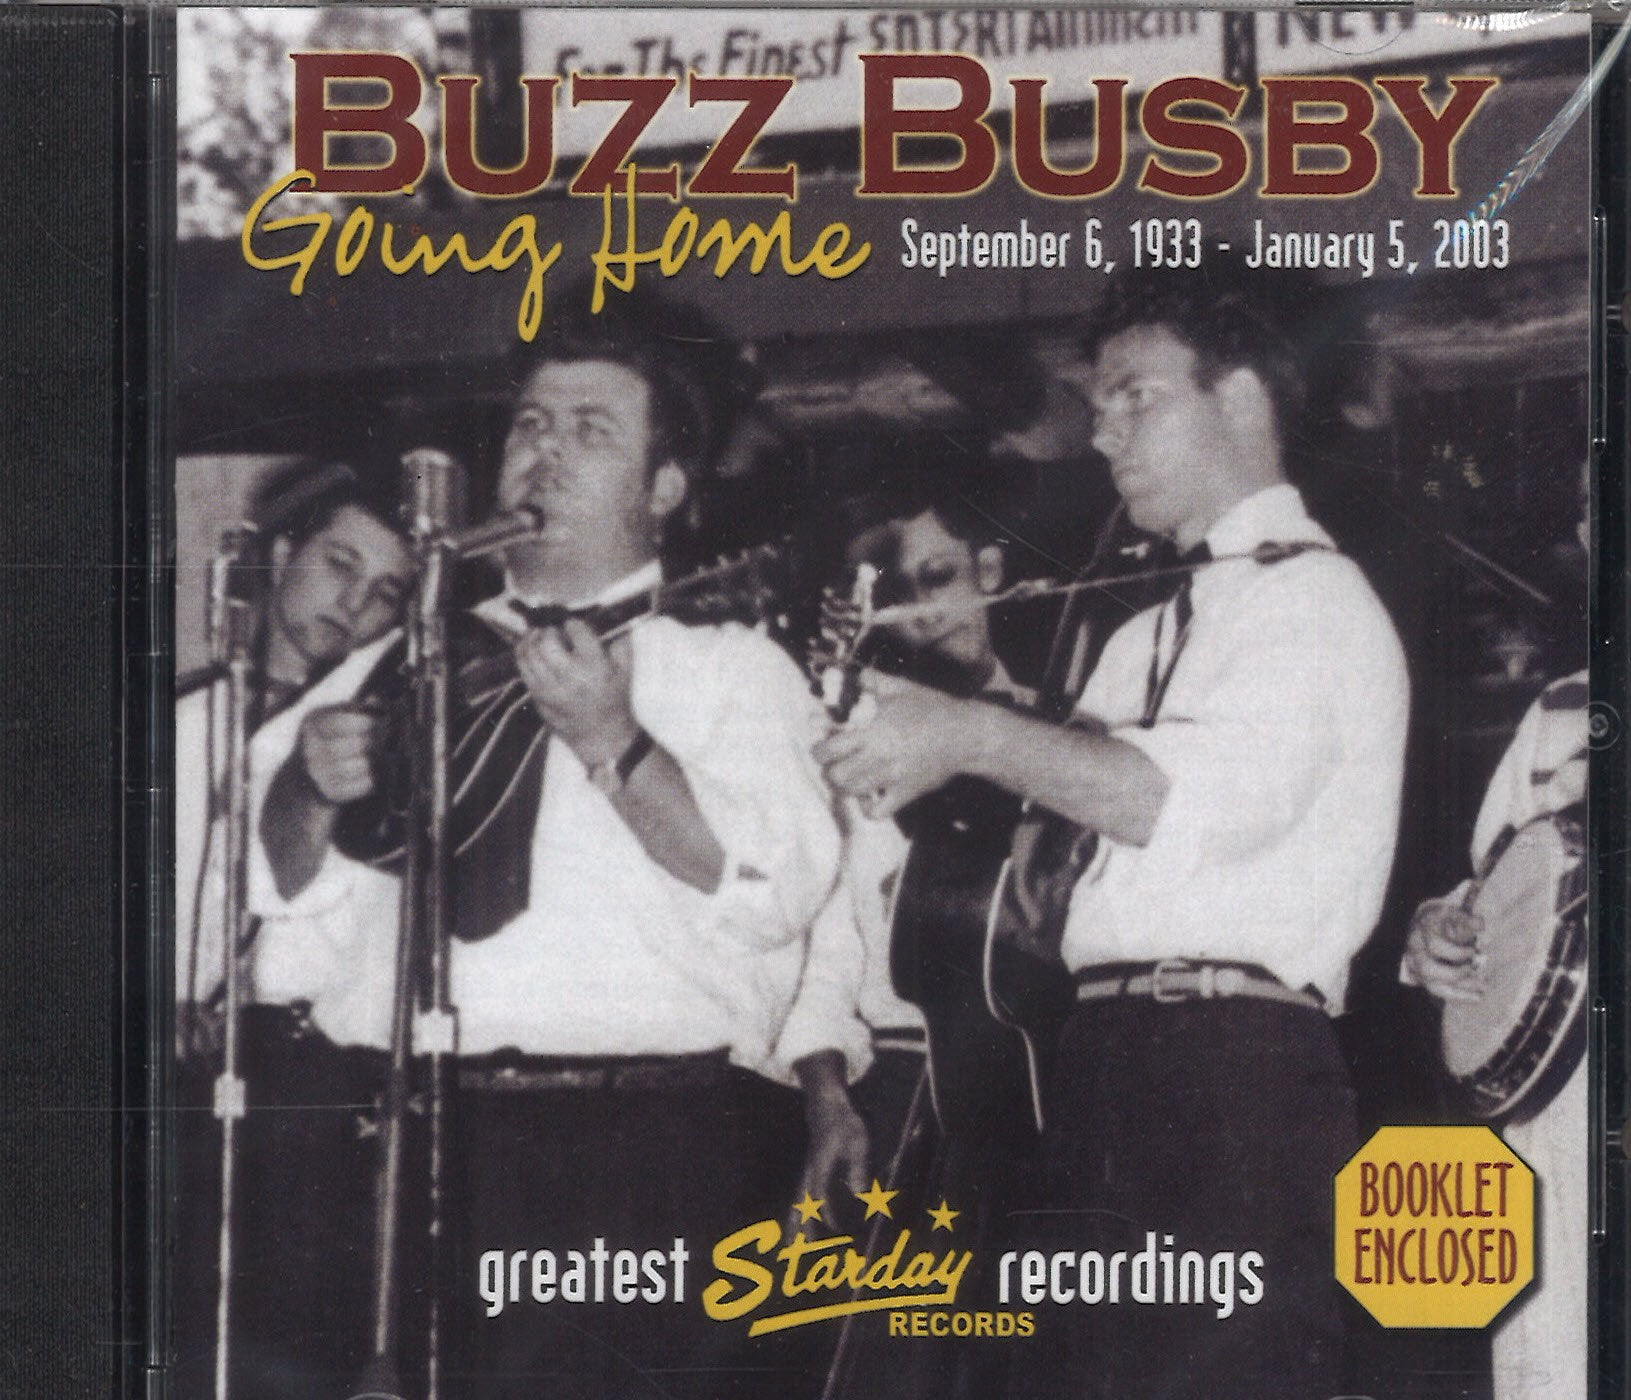 Buzz Busby Going Home